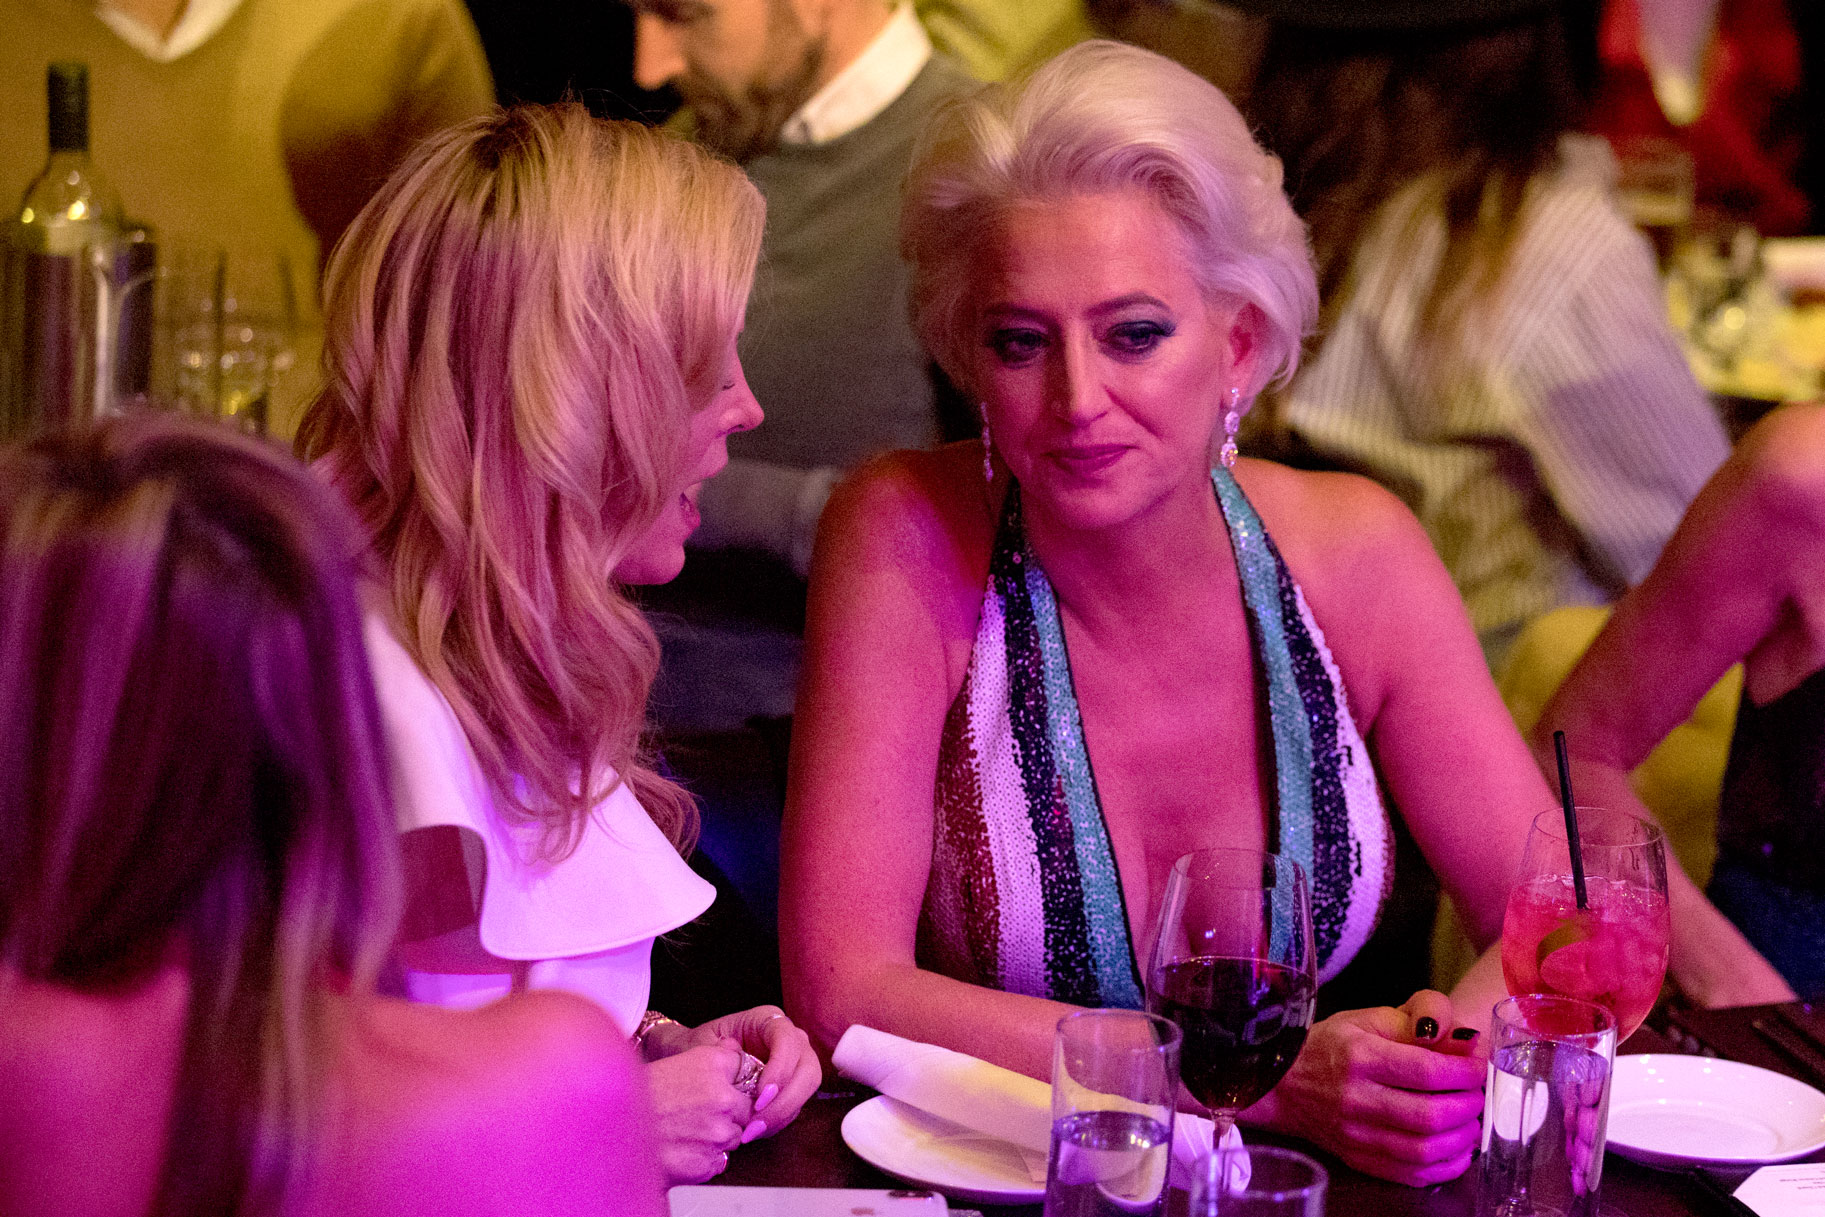 Dorinda Medley at Luann de Lesseps' Cabaret Show in Season 10 of The Real Housewives of New York City